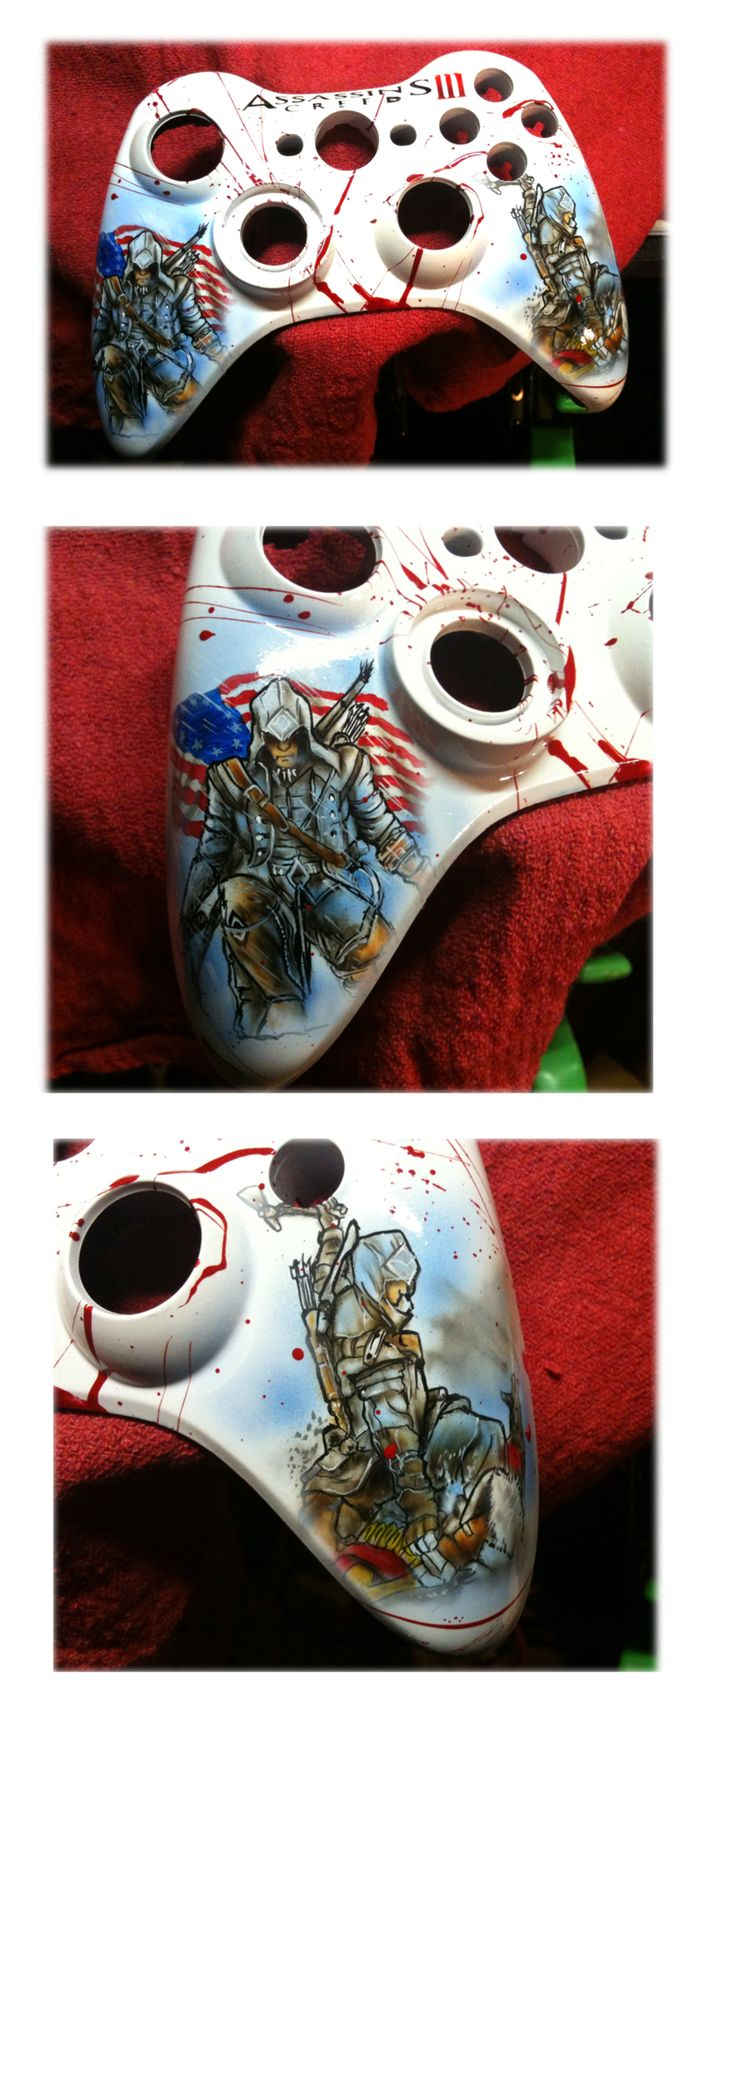 15 Best Ideas About Xbox Controller On Pinterest Xbox